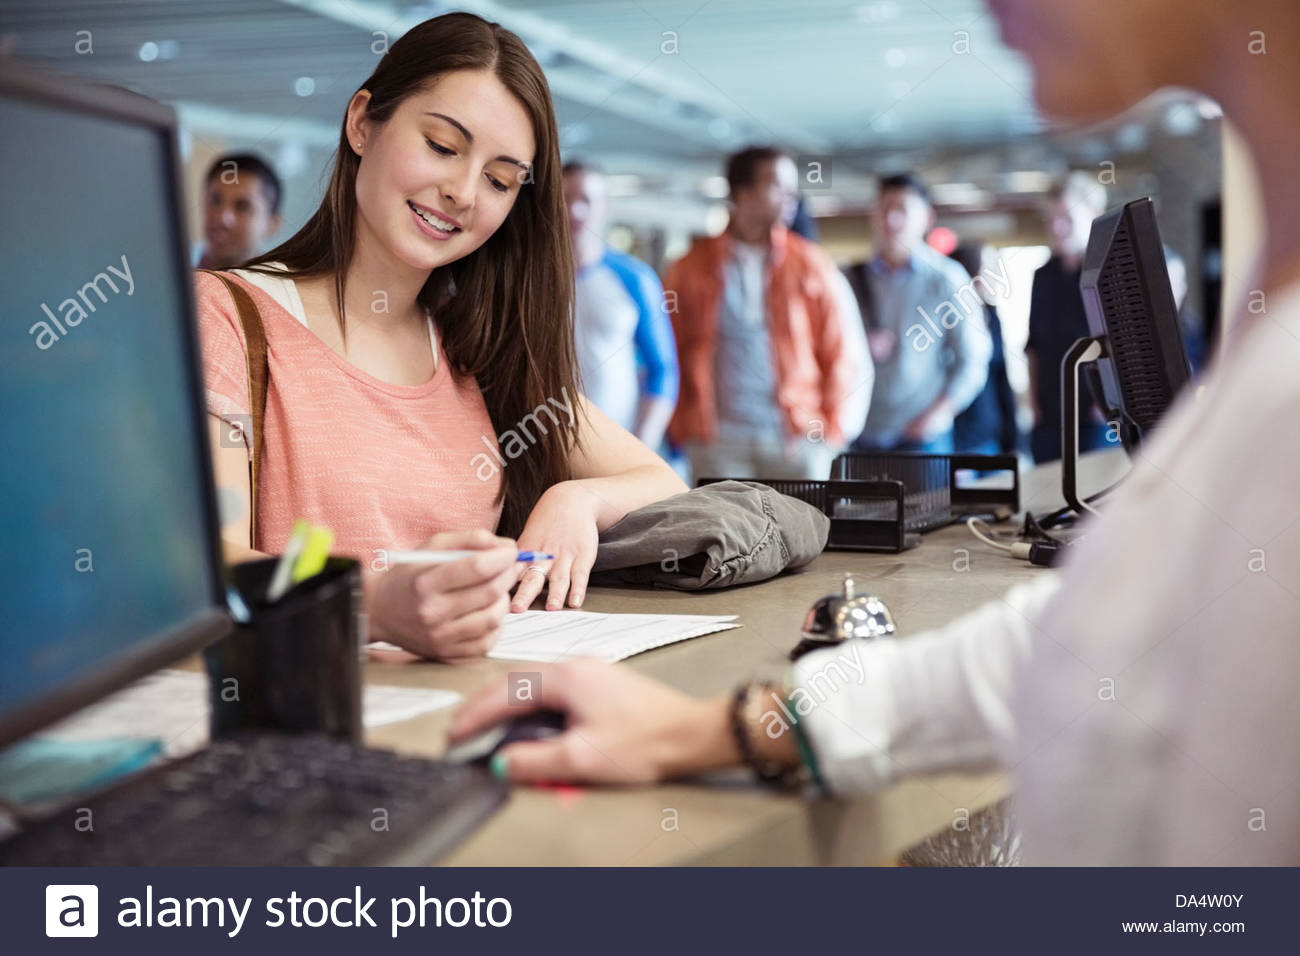 Young students registering for classes at college campus - Stock Image